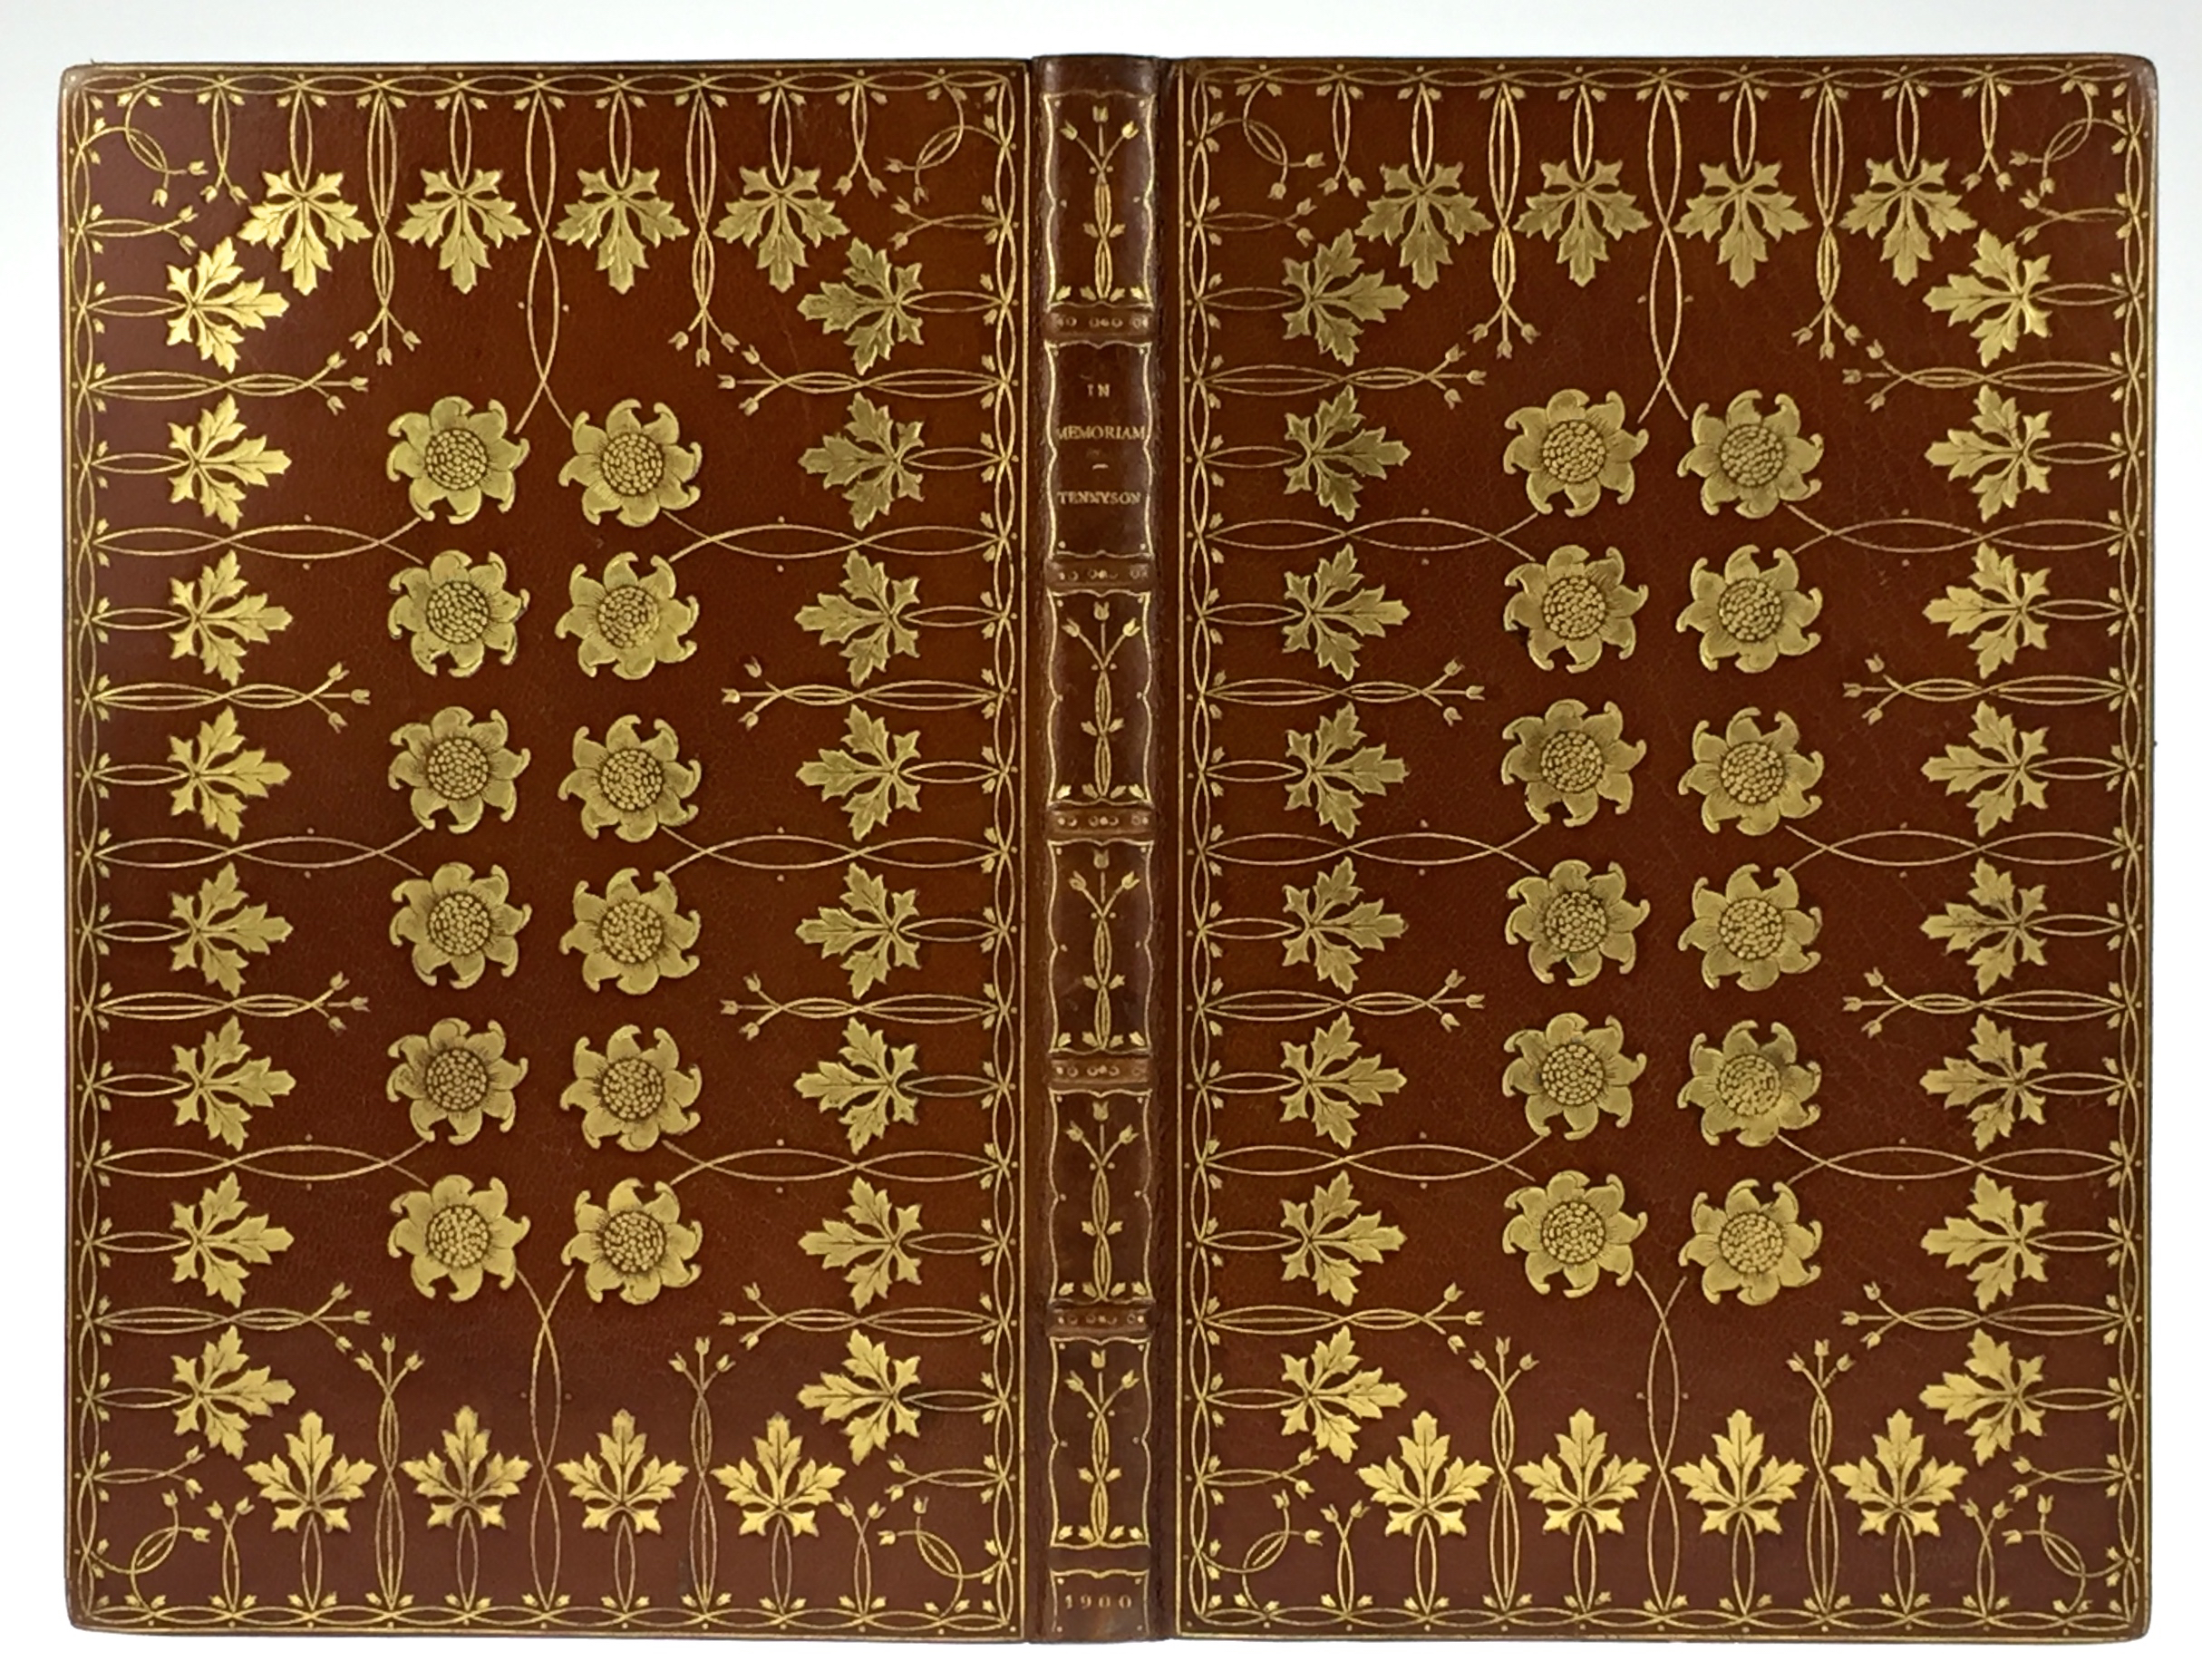 Tennyson Poem in Riviere Binding